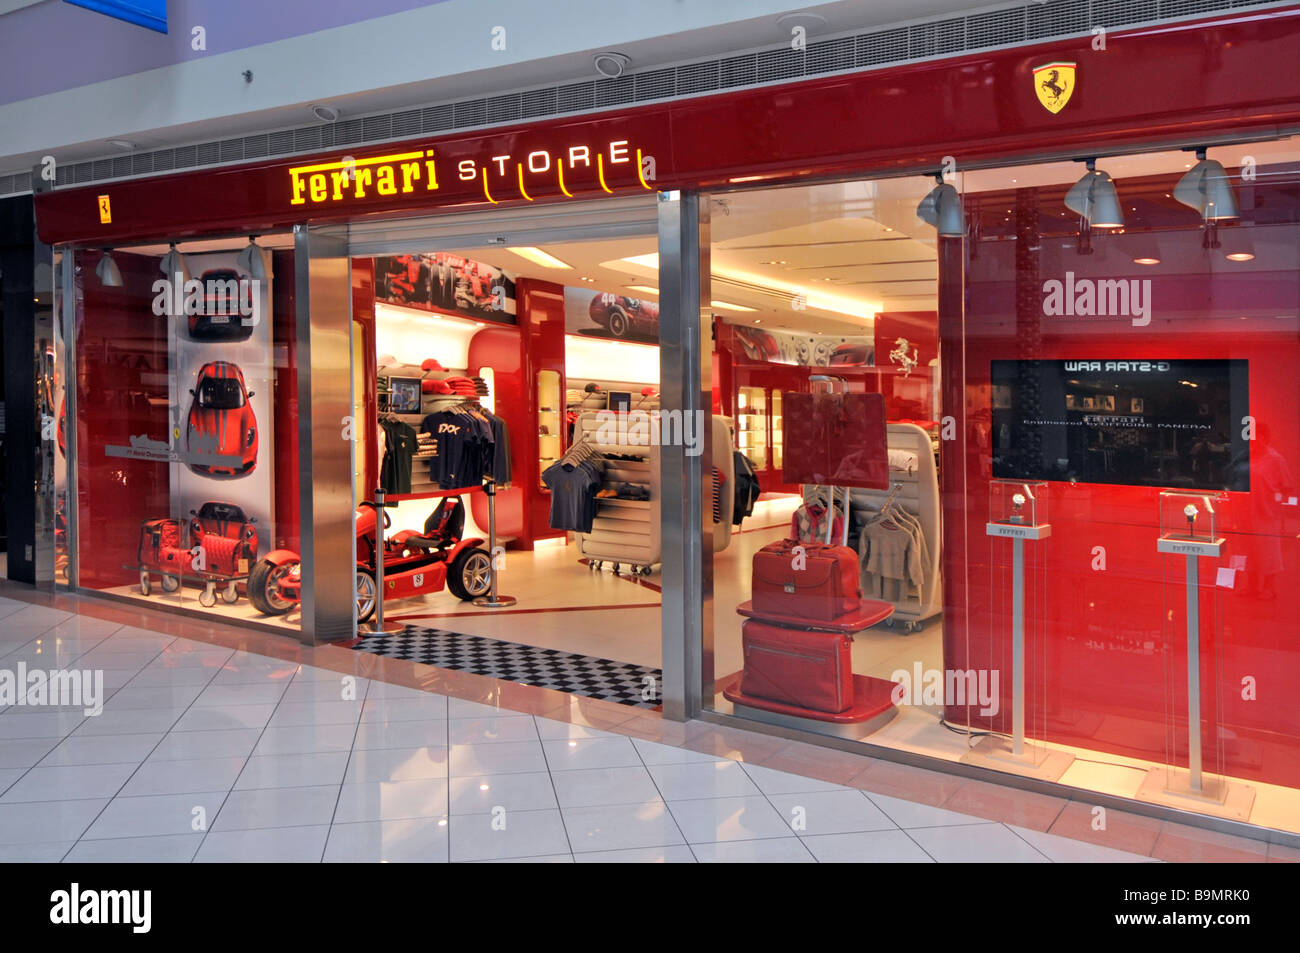 Abu Dhabi Marina shopping mall Ferrari store and shop front Stock ... 730ffdd18c